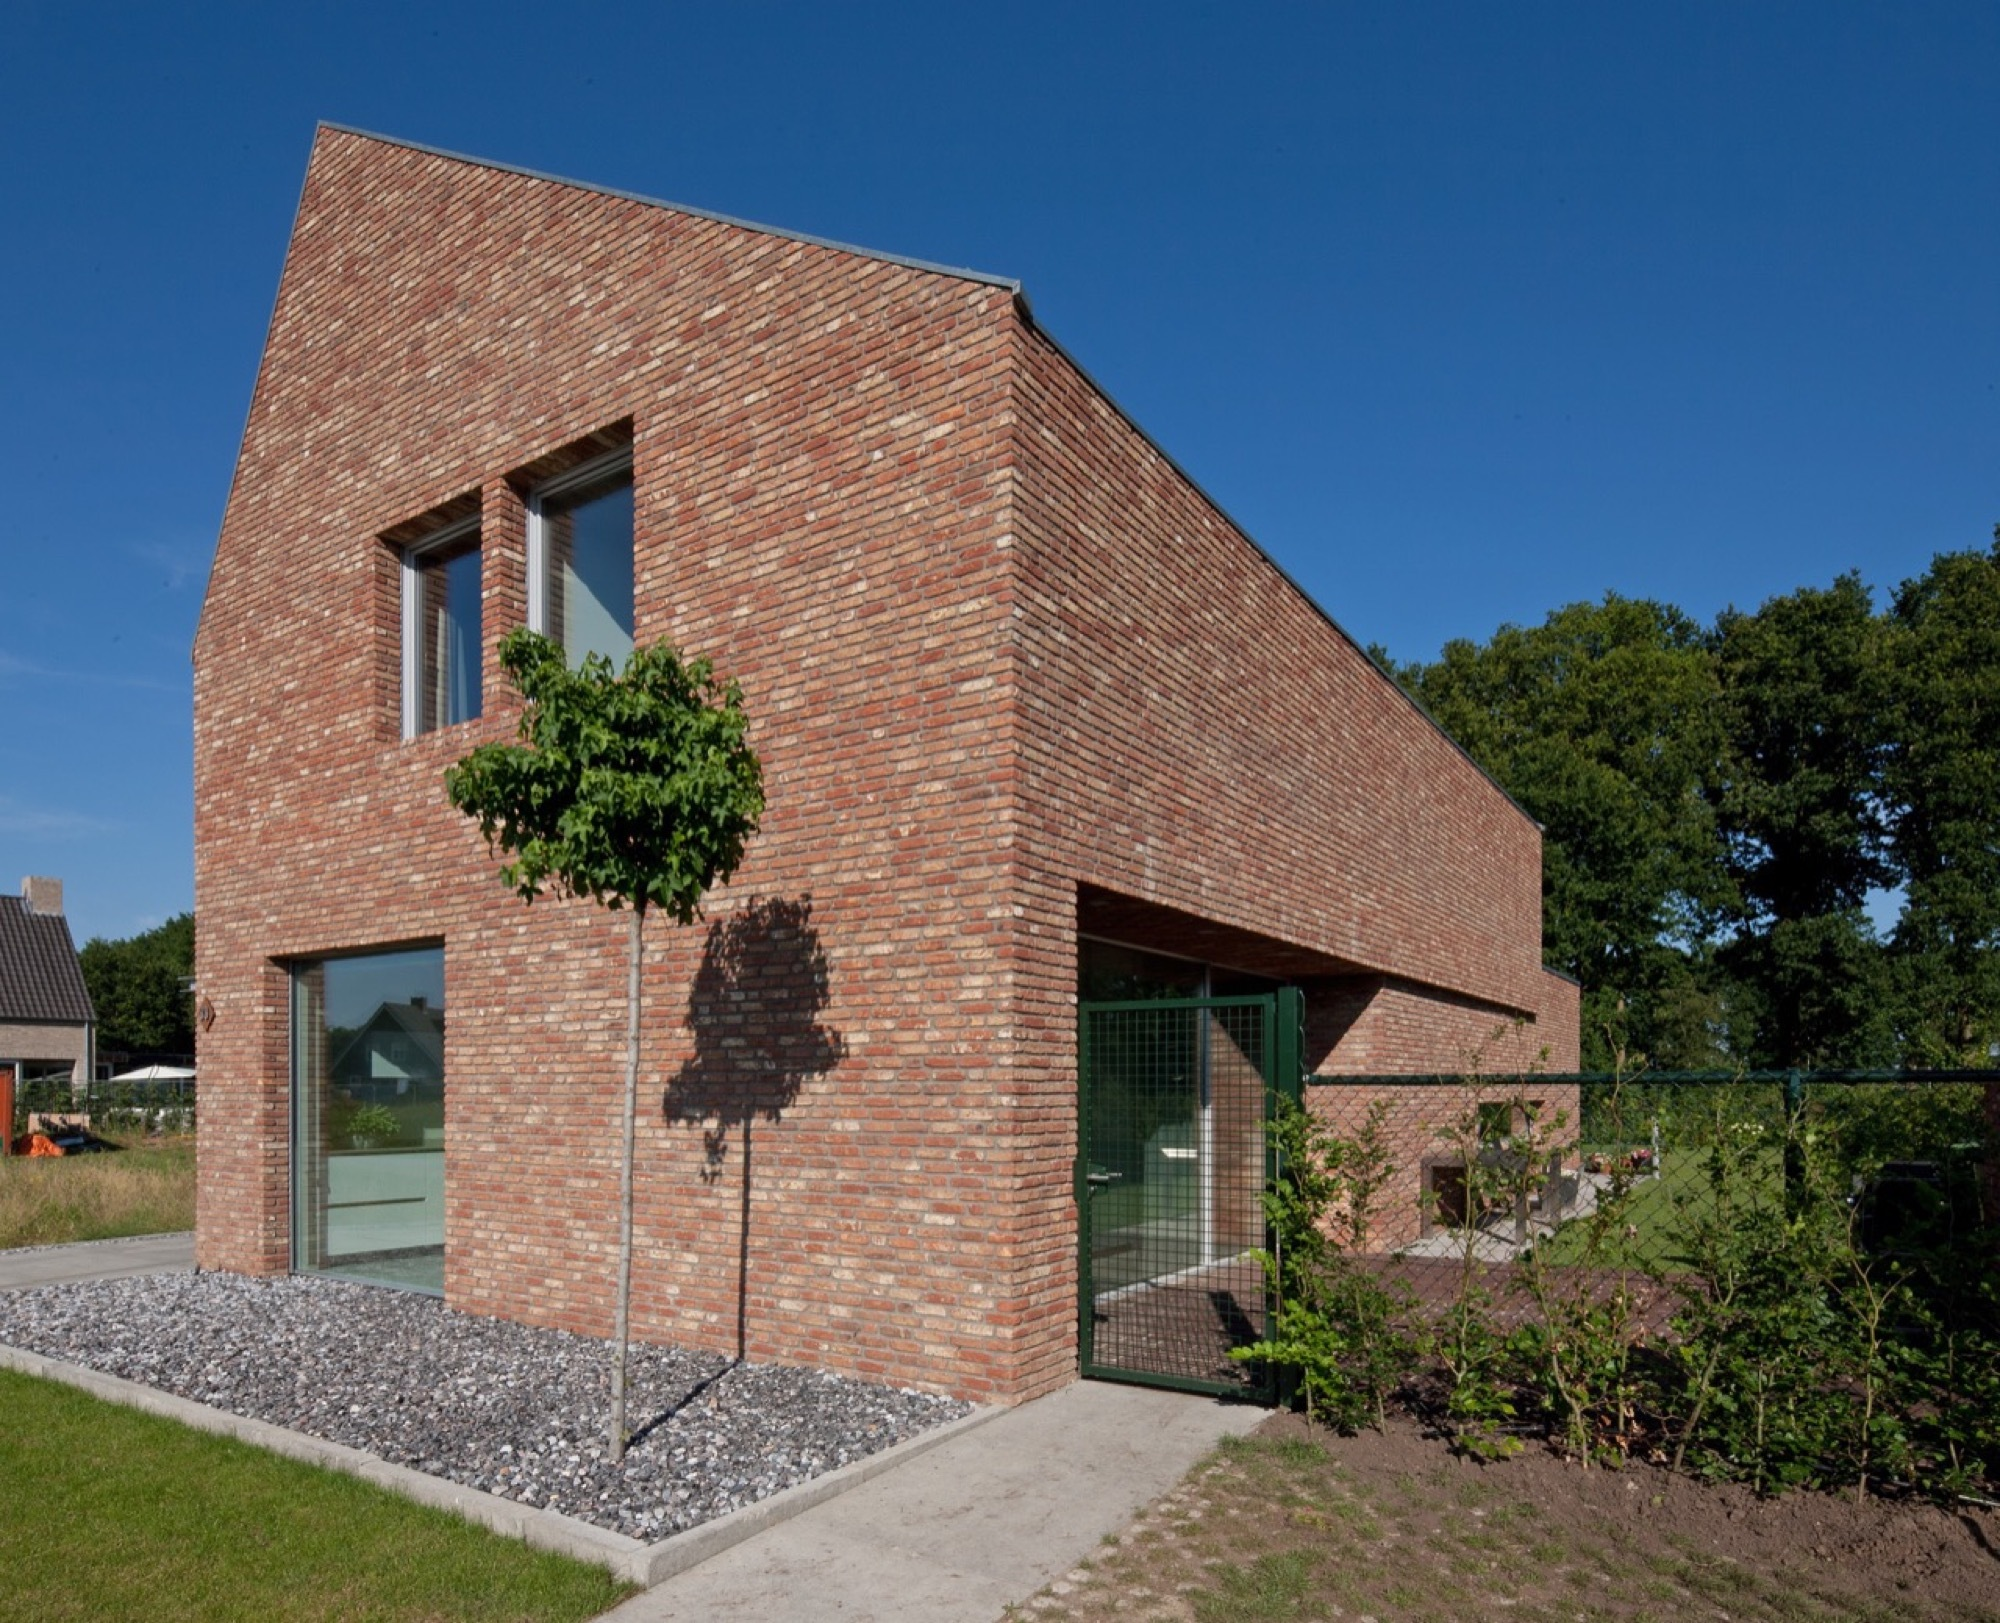 Gallery Of Riel Estate Joris Verhoeven Architectuur 10